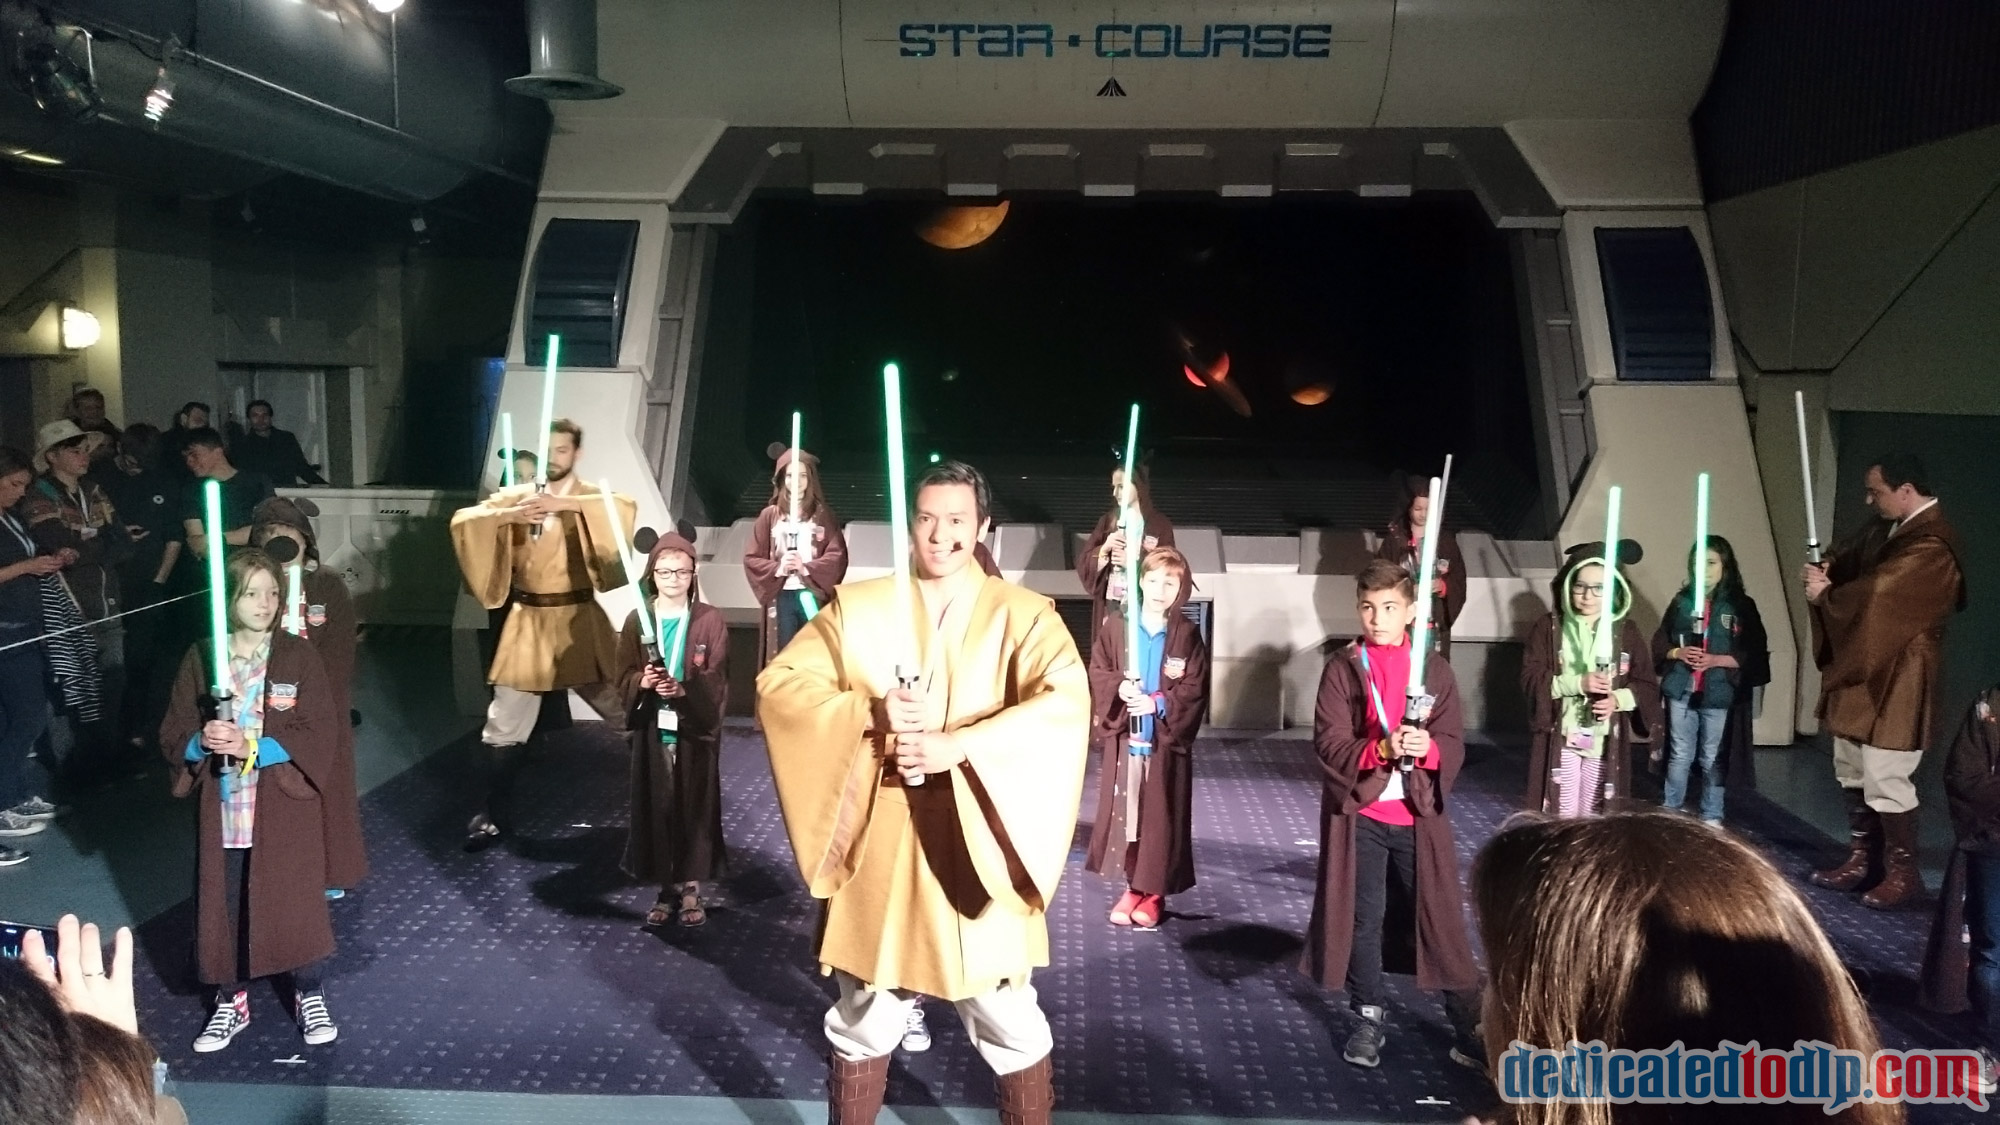 Star Wars Disneyland Ride Disneyland Paris Star Wars